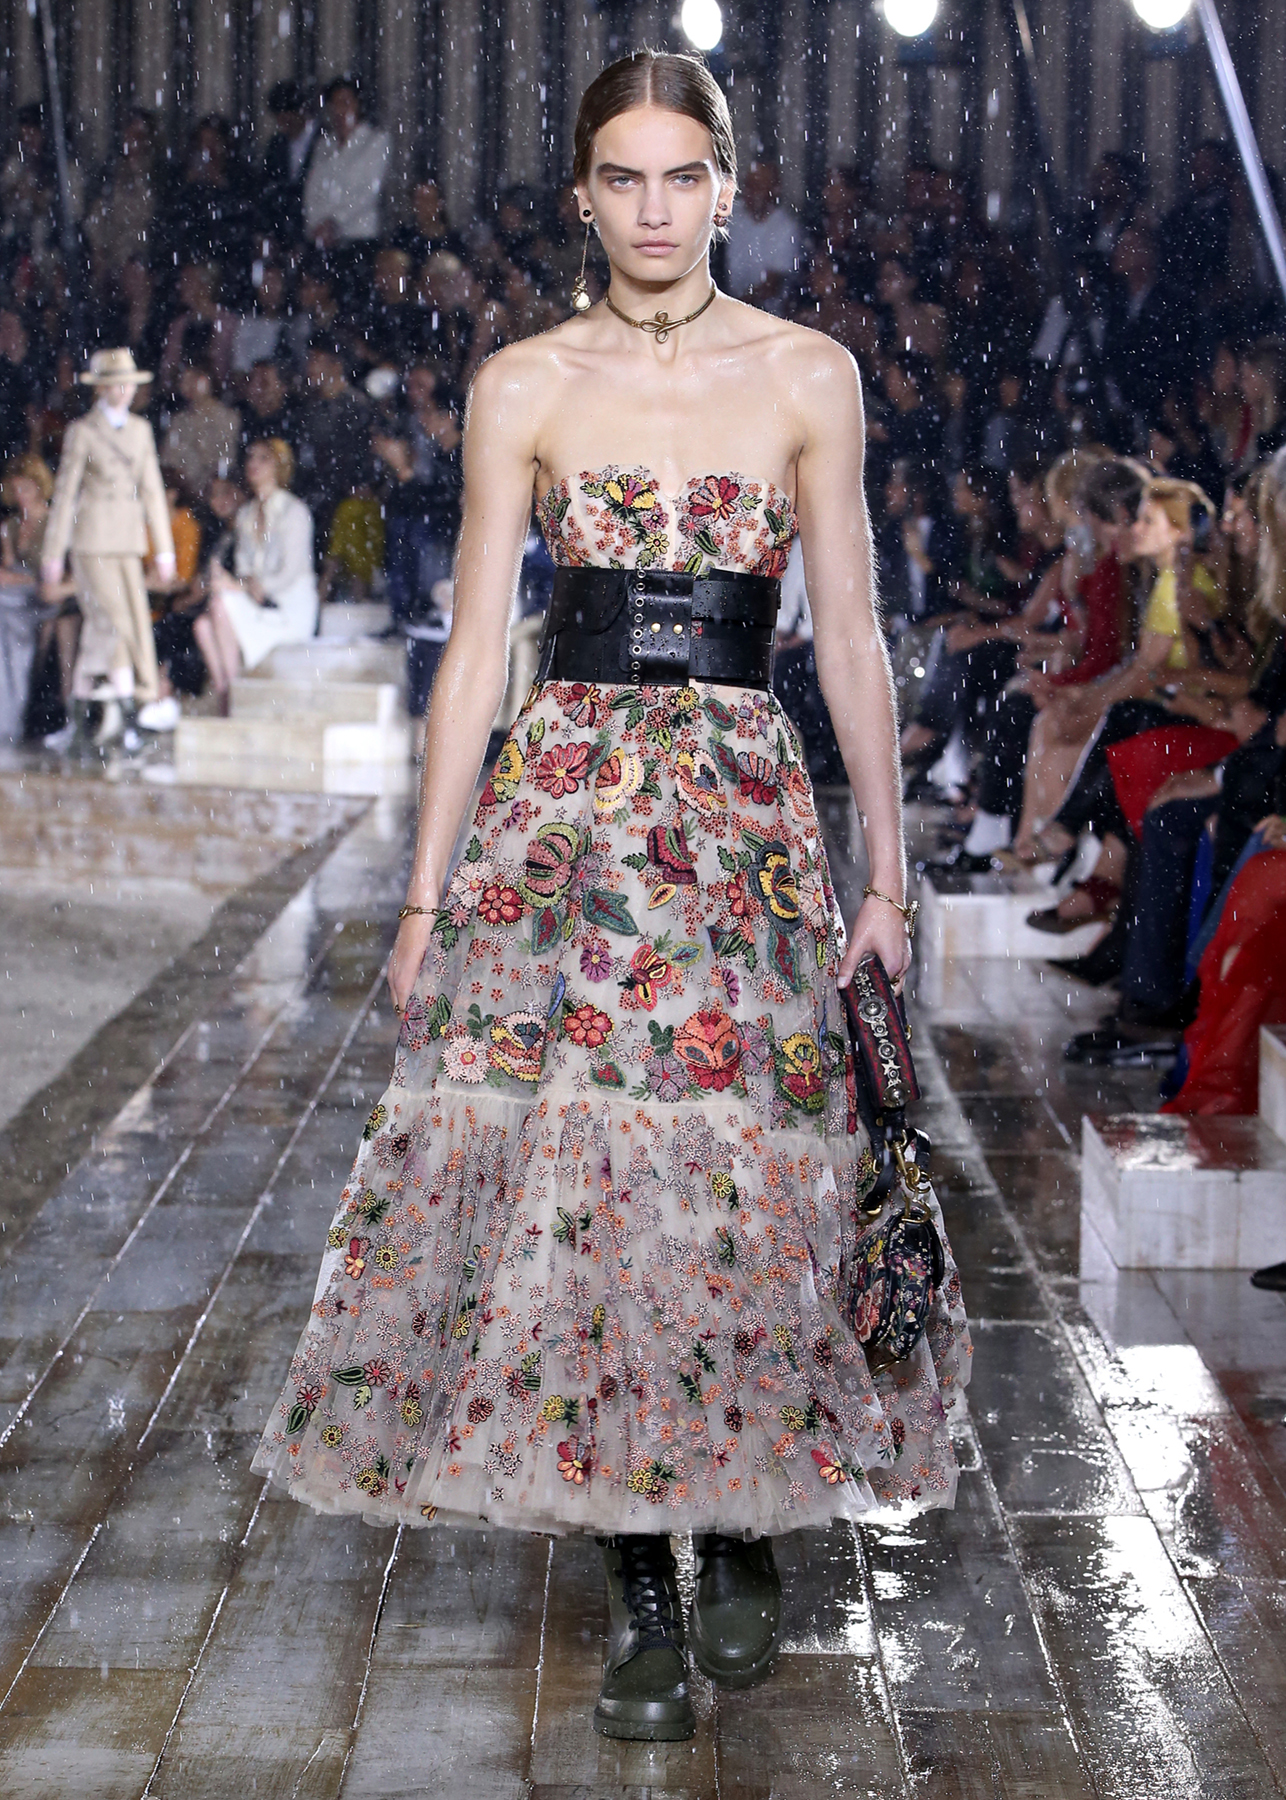 Dior Cruise 2019 Fashion Show